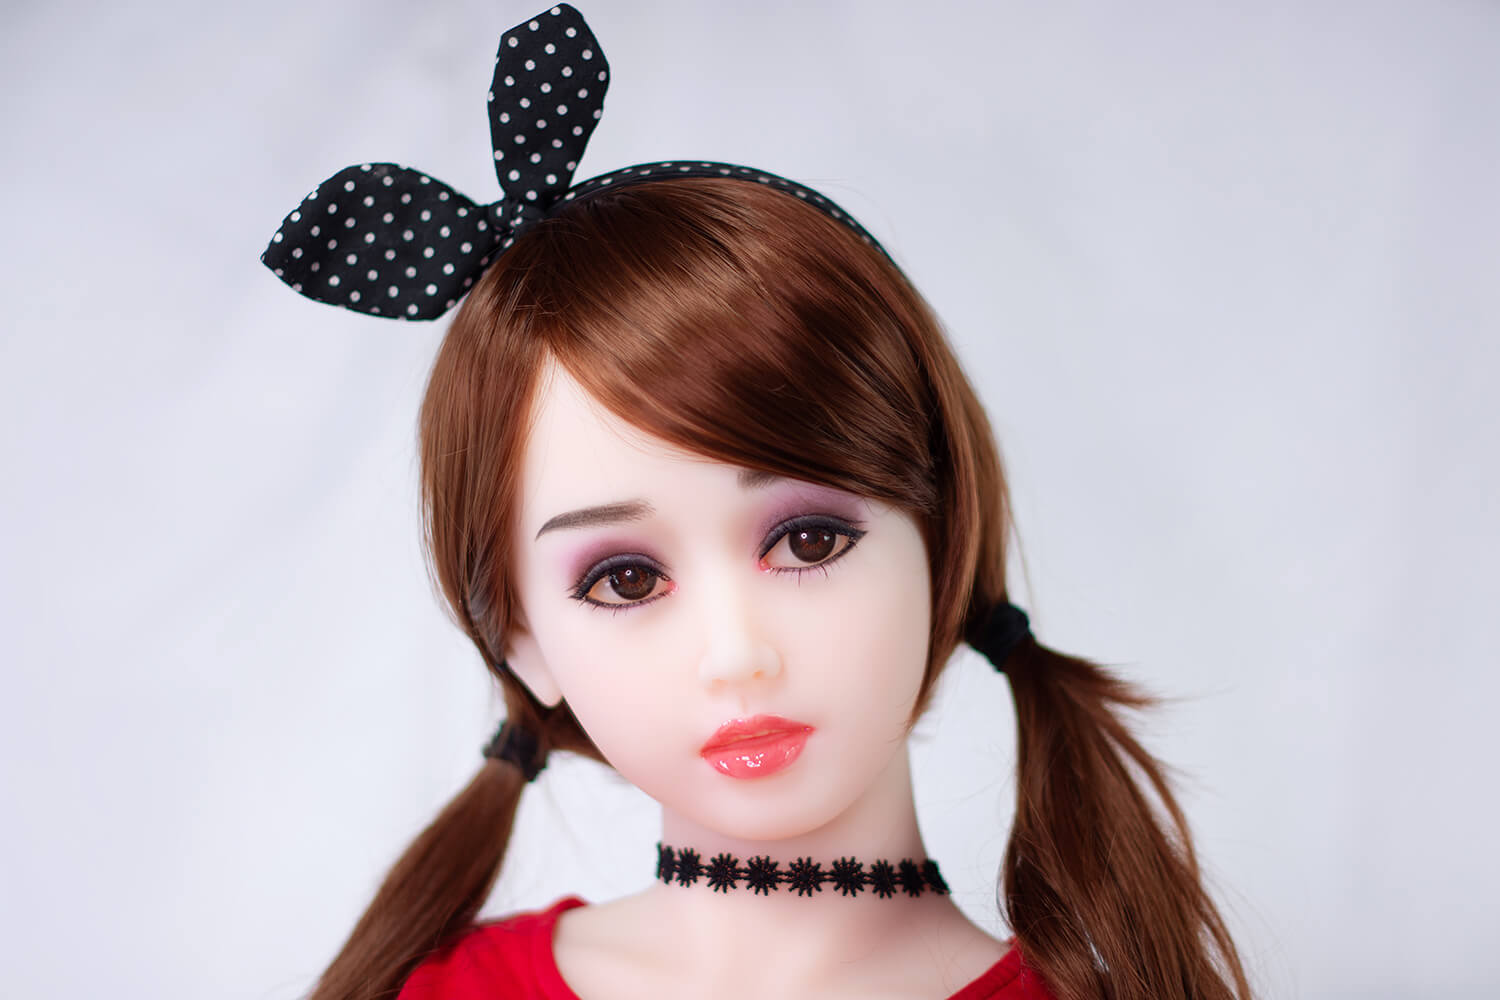 125CM Young Teen Sex Doll - Amber